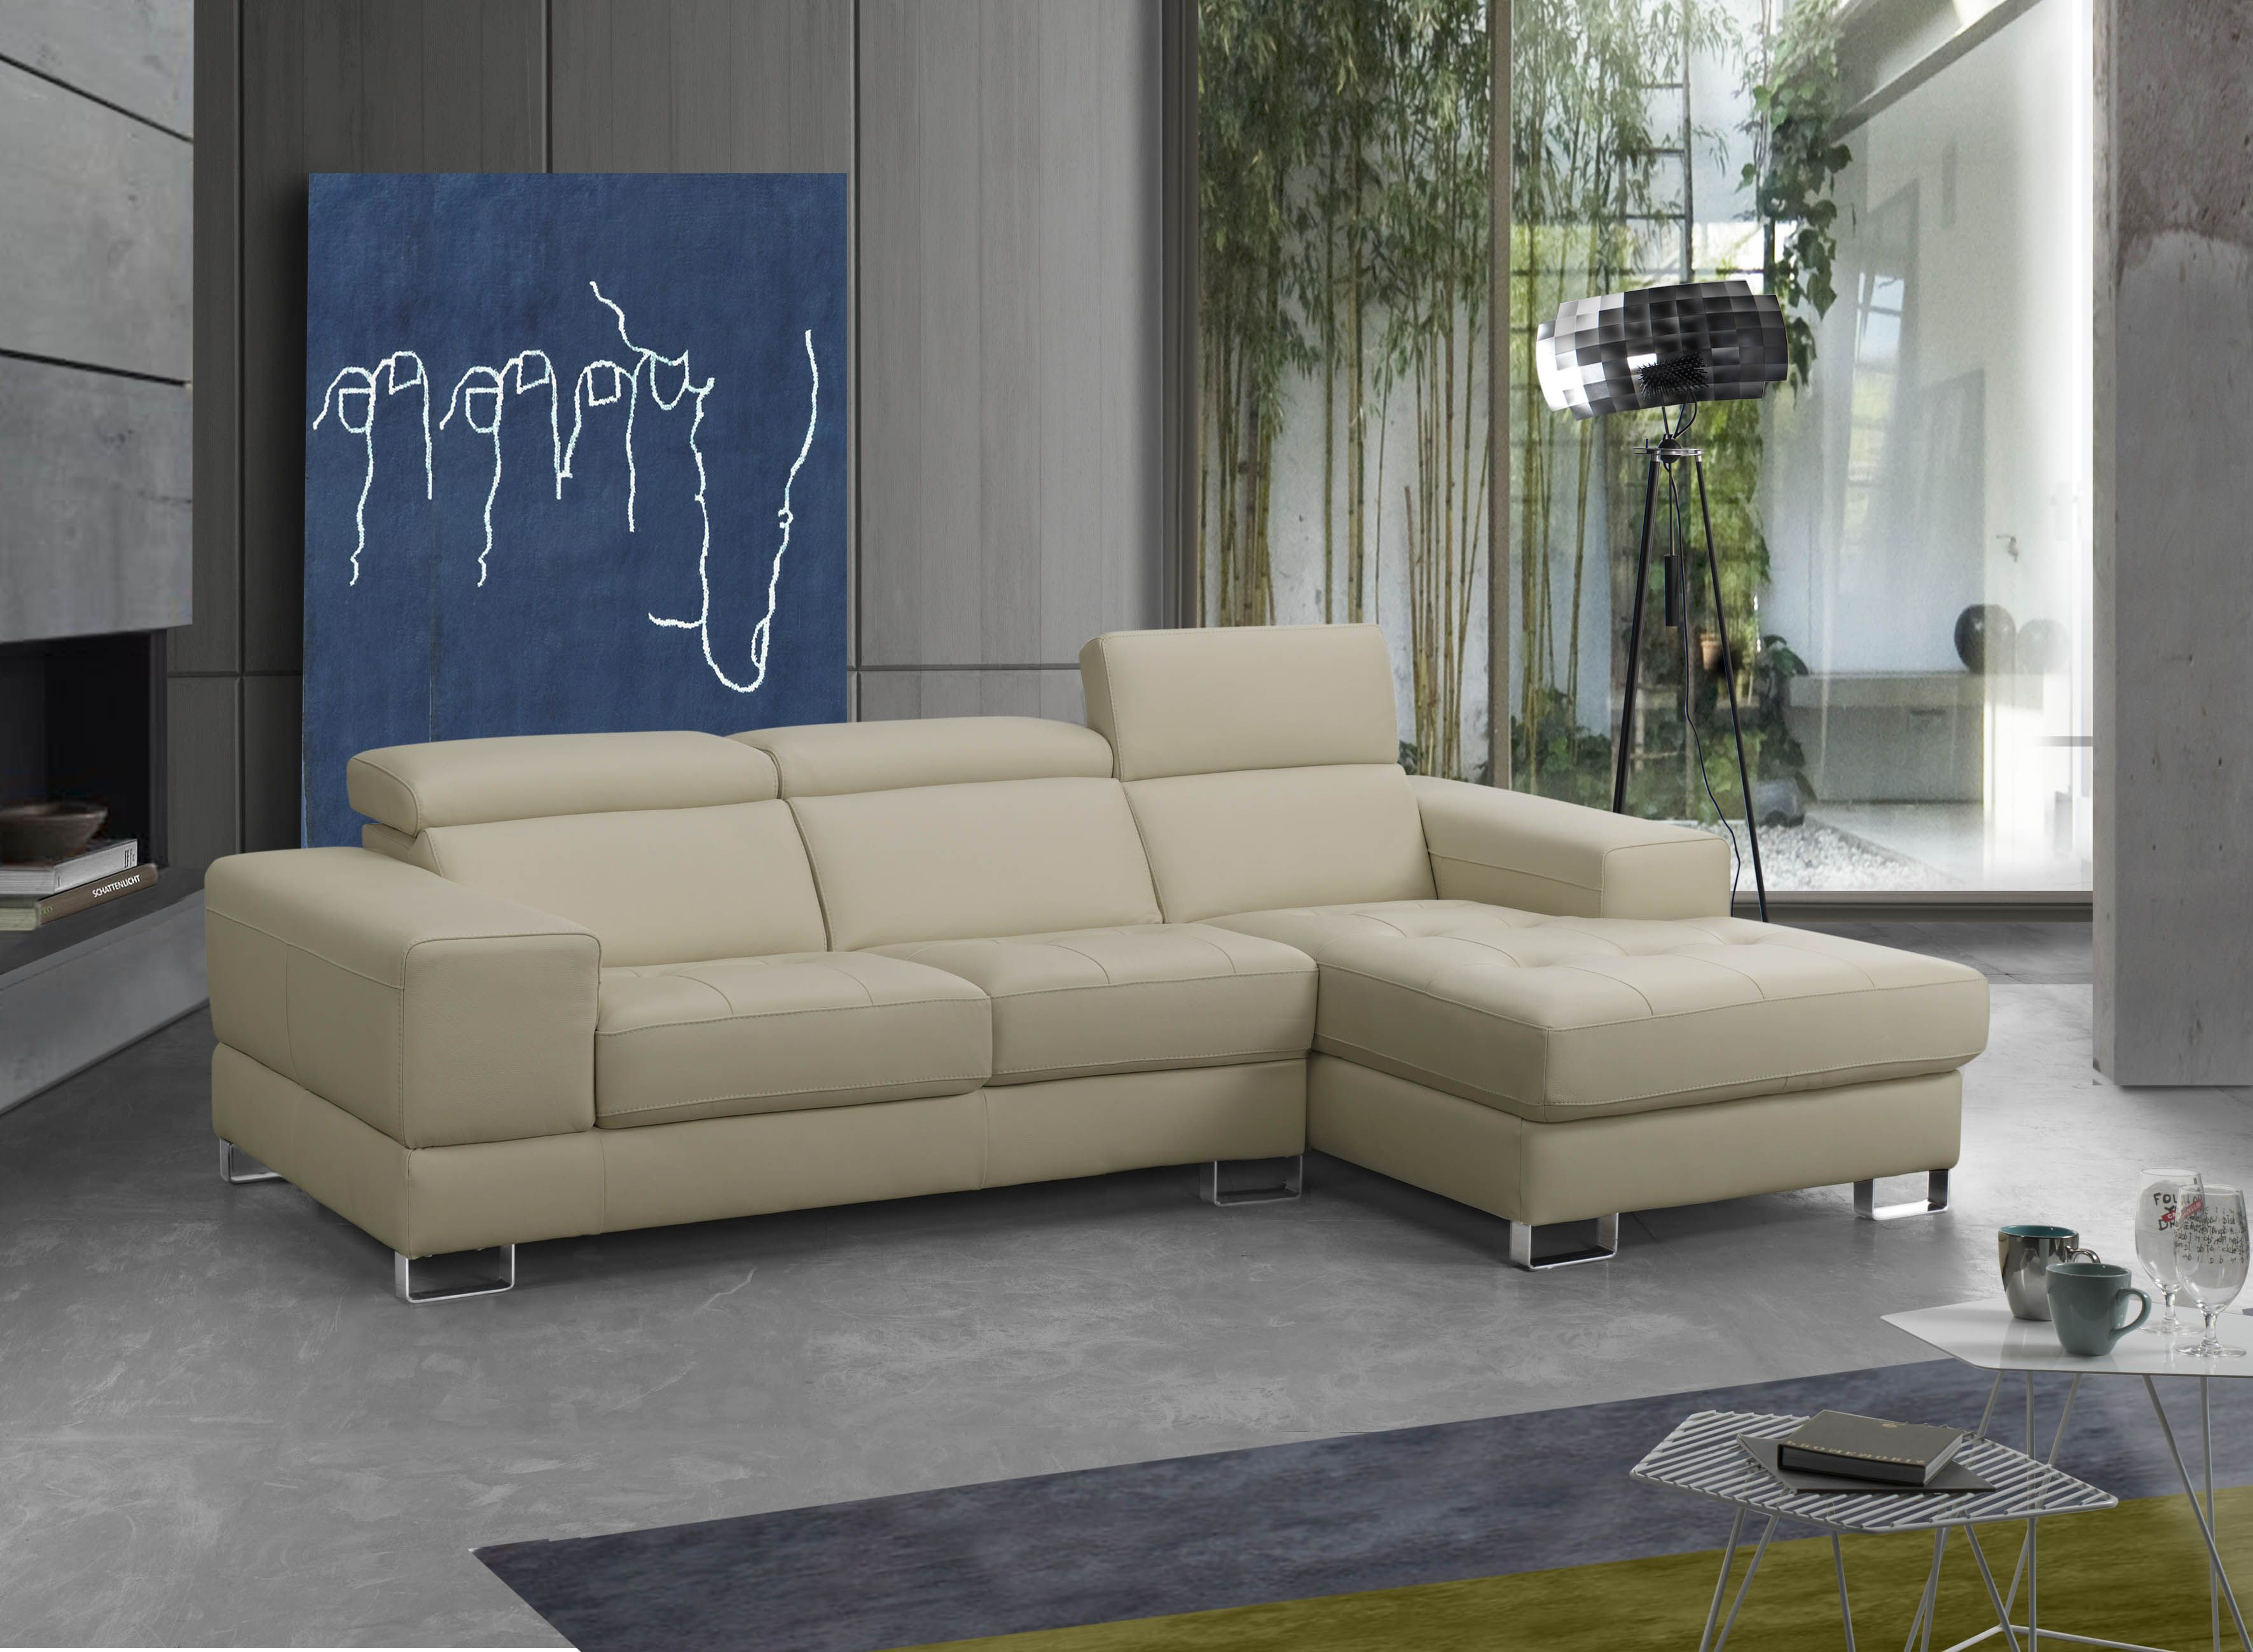 Advanced Adjustable Furniture Italian Leather Upholstery Corner